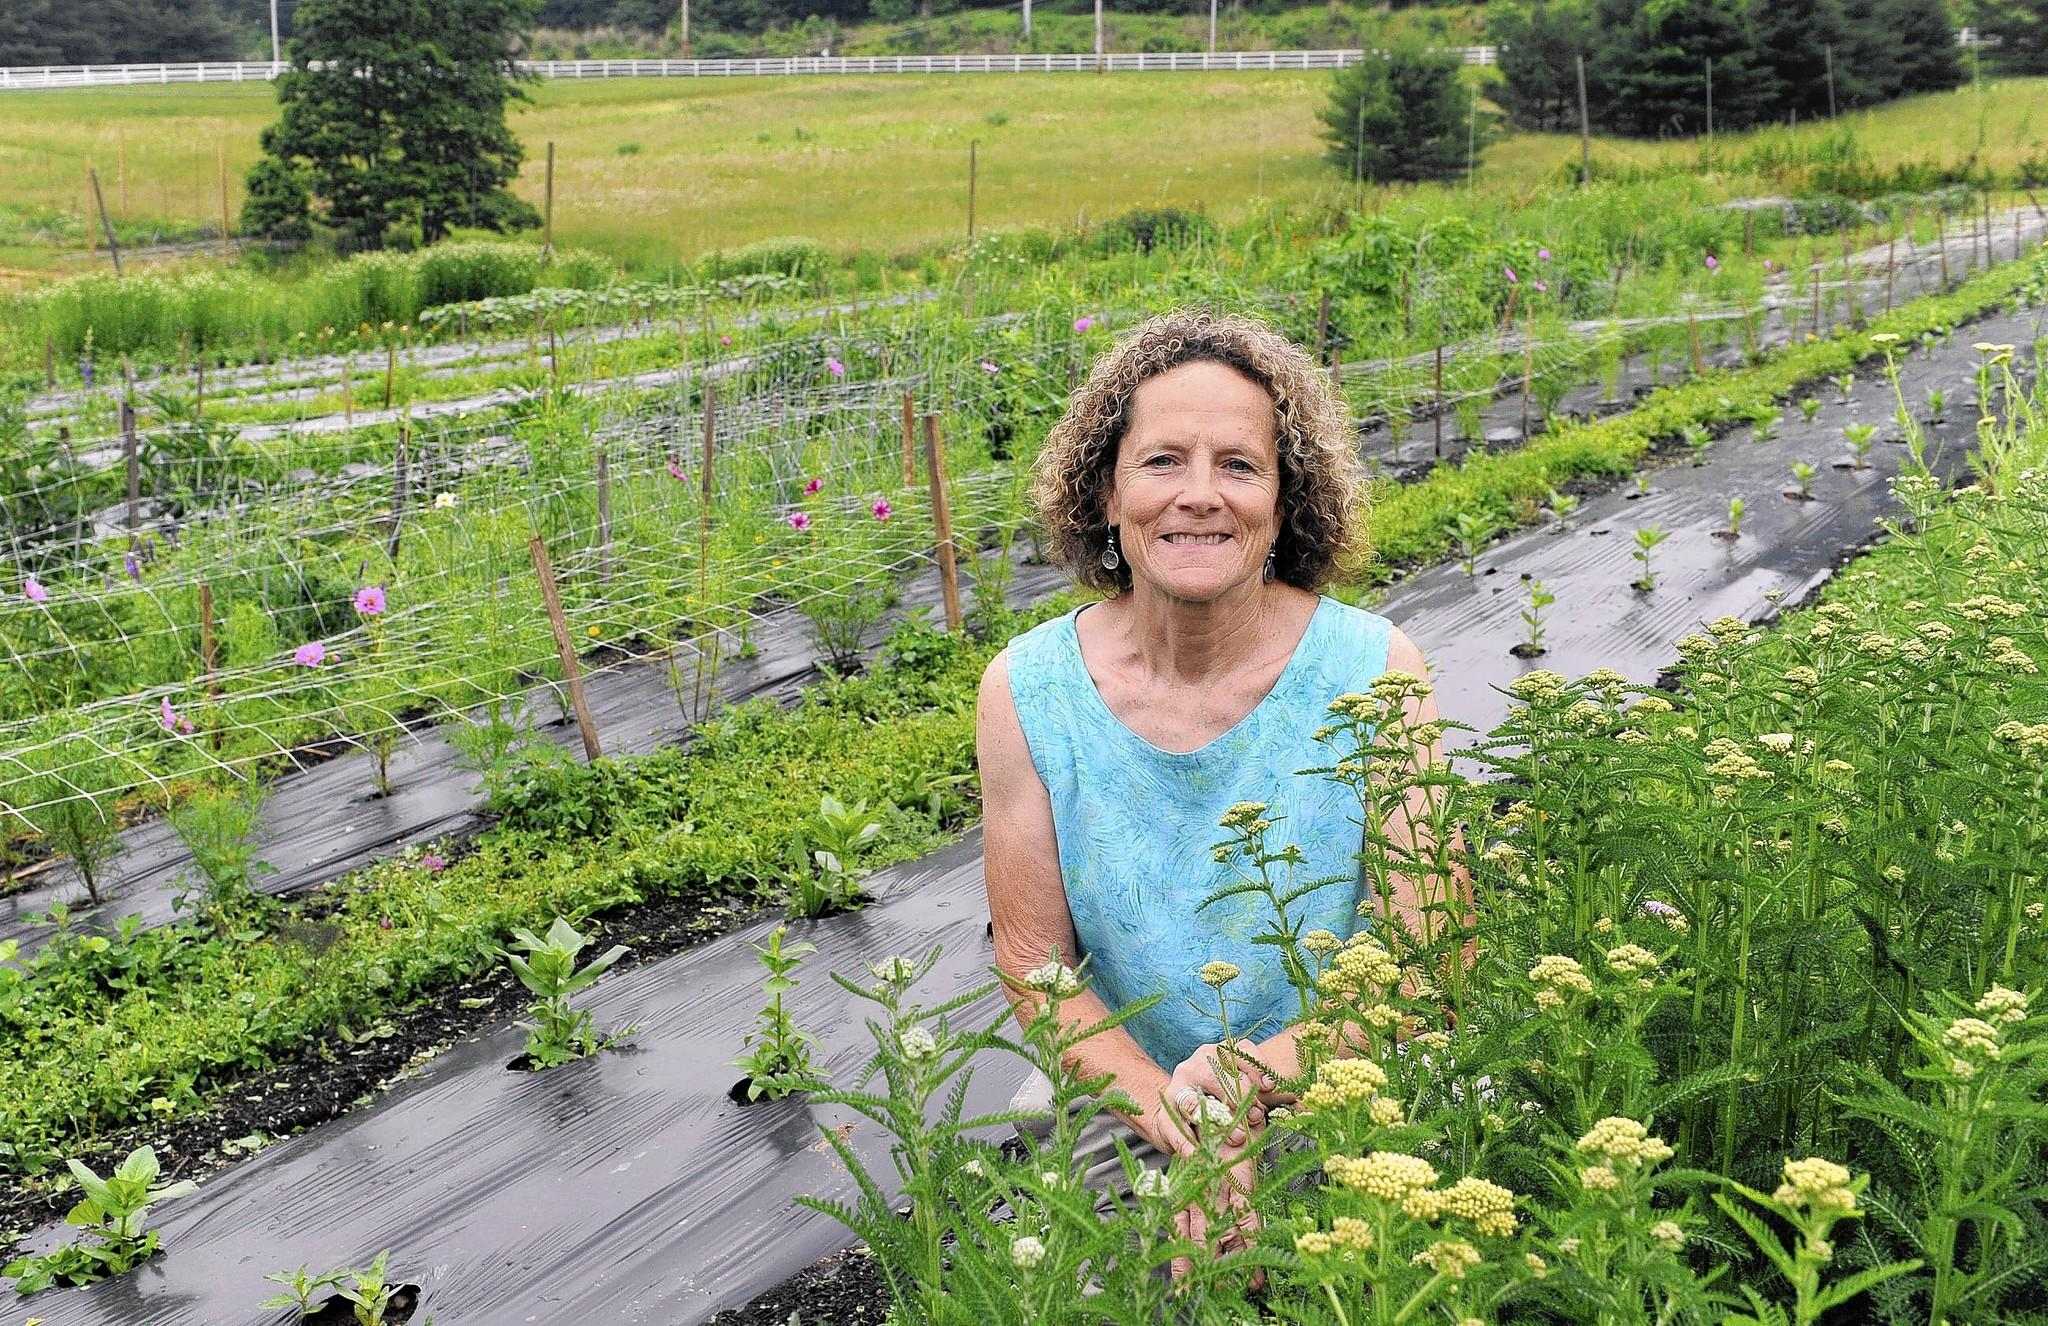 Cate Murphy is founder and executive director of Talmar, a garden and horticultural therapy program located in Cromwell Valley Park.